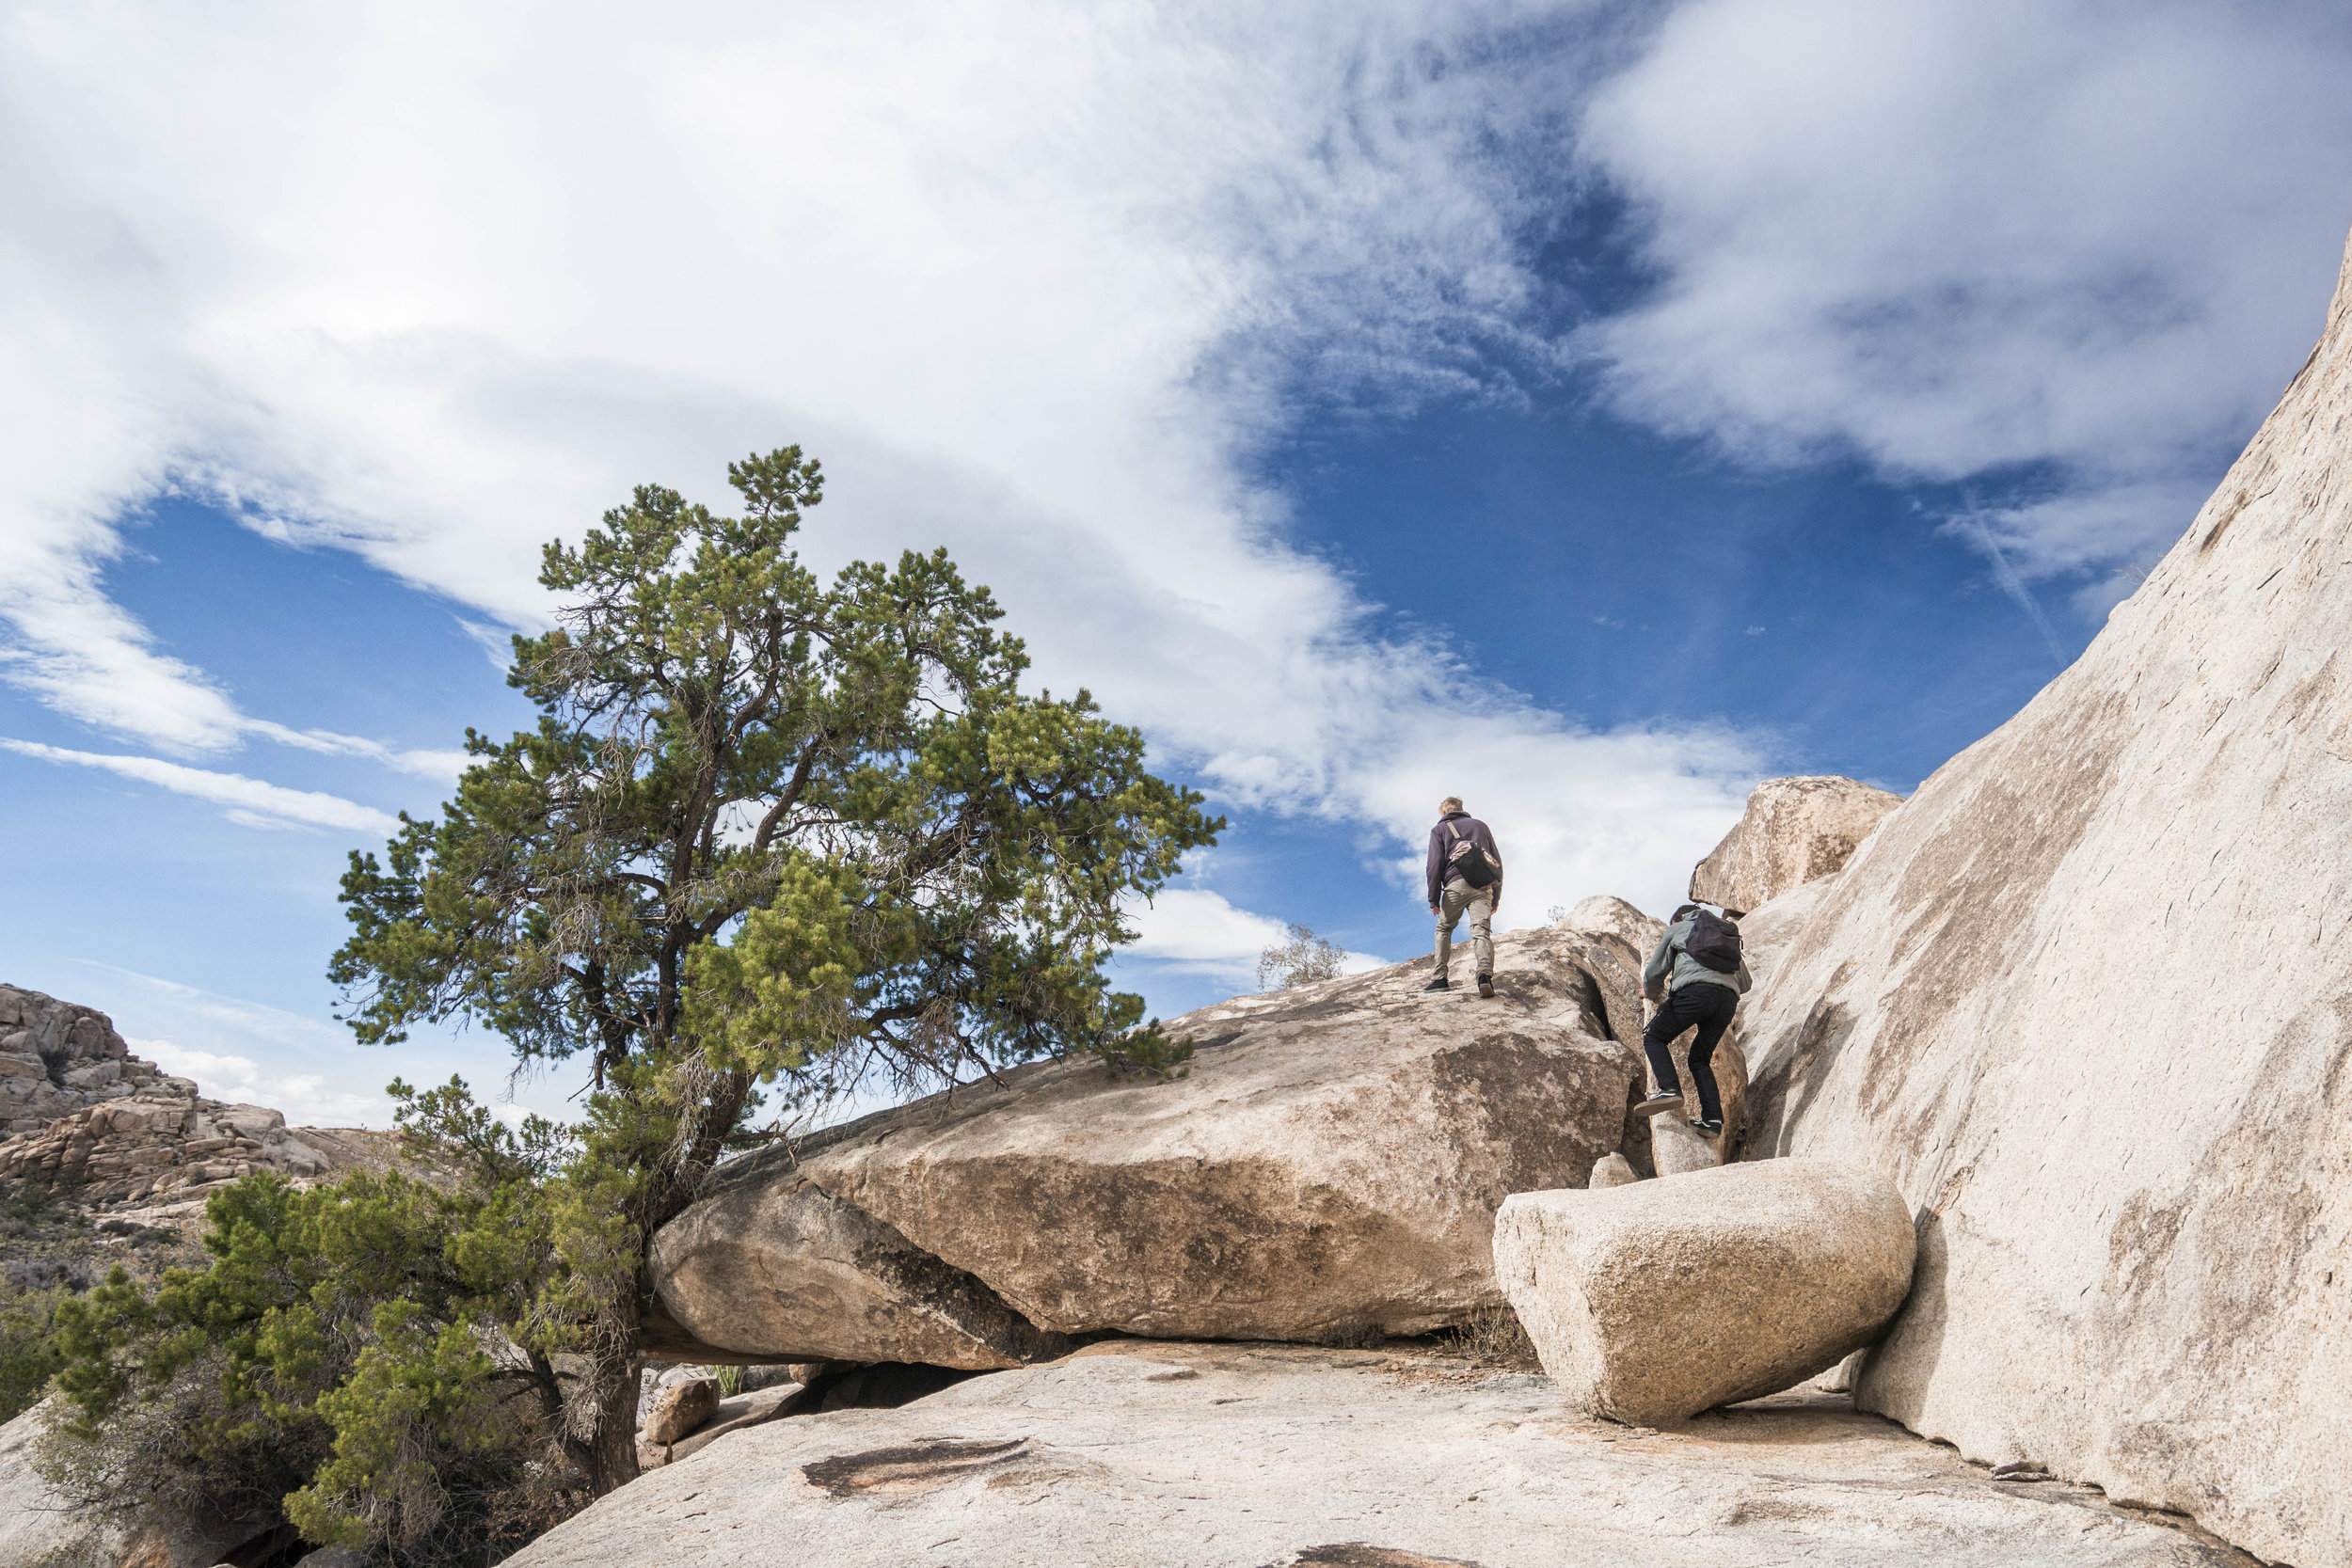 Joshua Tree isn't the first place you'd think of to have Pine Trees, but the rocks filter enough water over isolated patches of soil for them to survive the brutal heat.